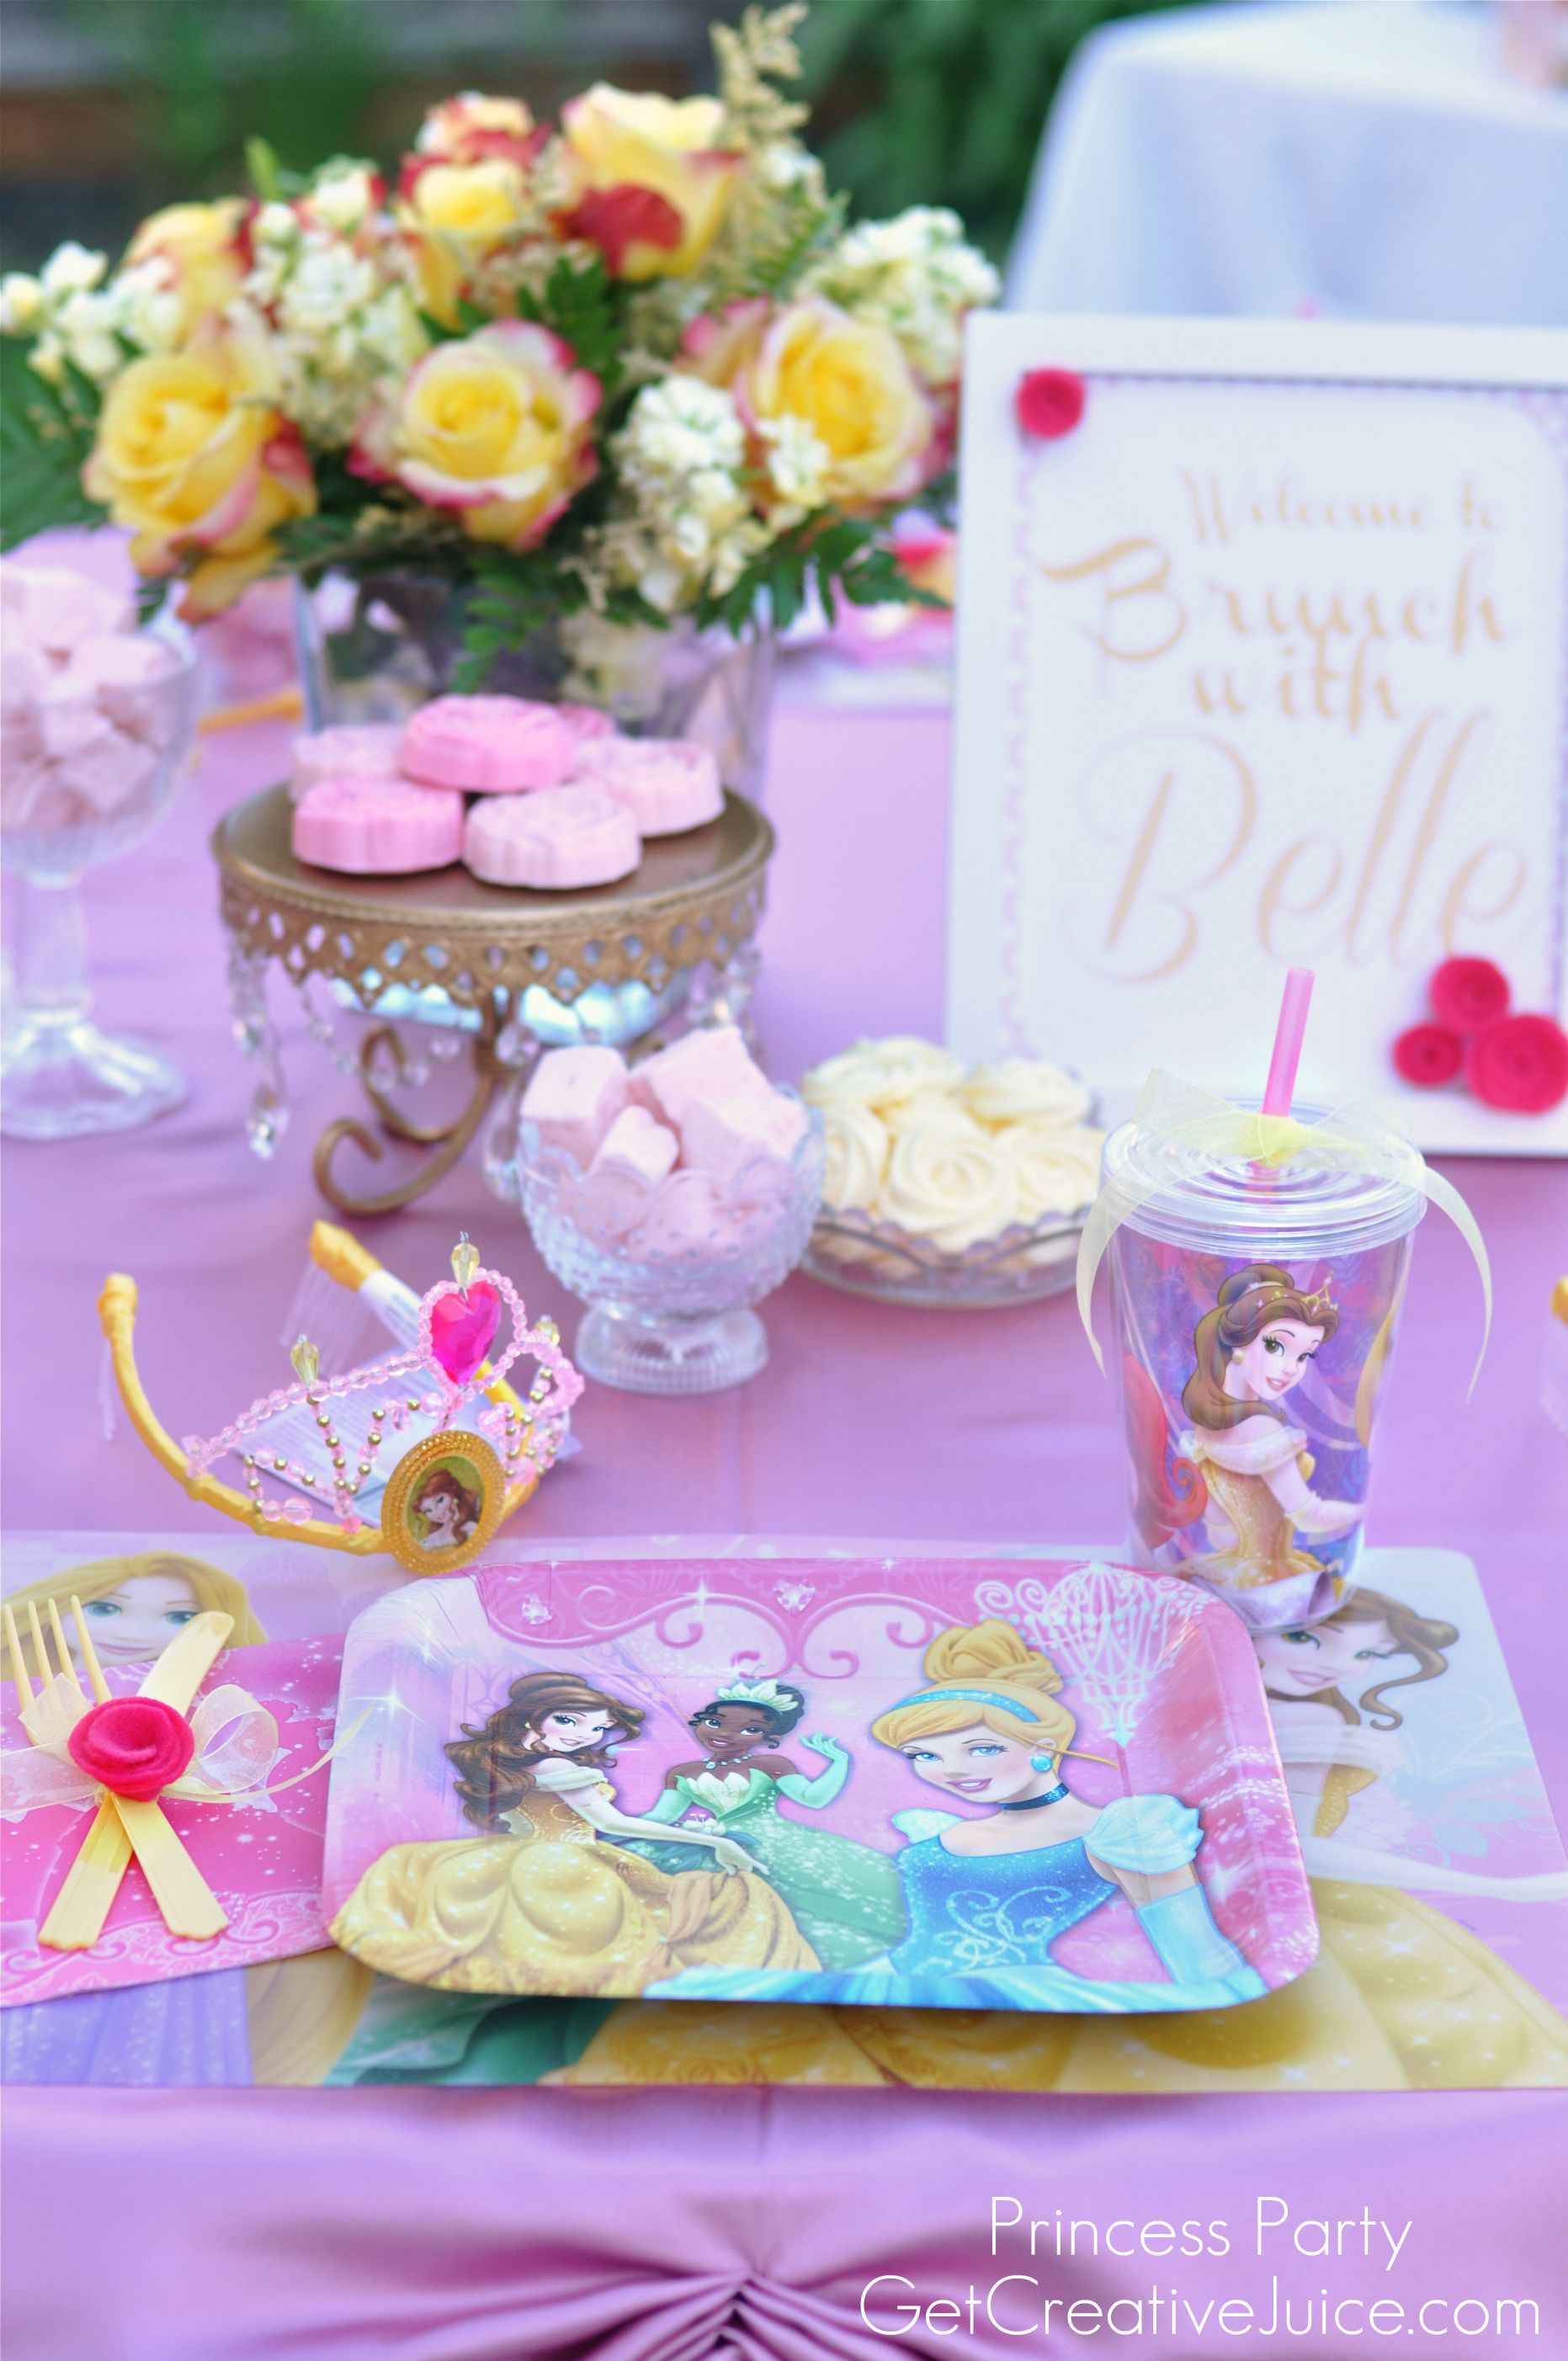 Merveilleux Princess Party Table Setting Ideas And Decorations